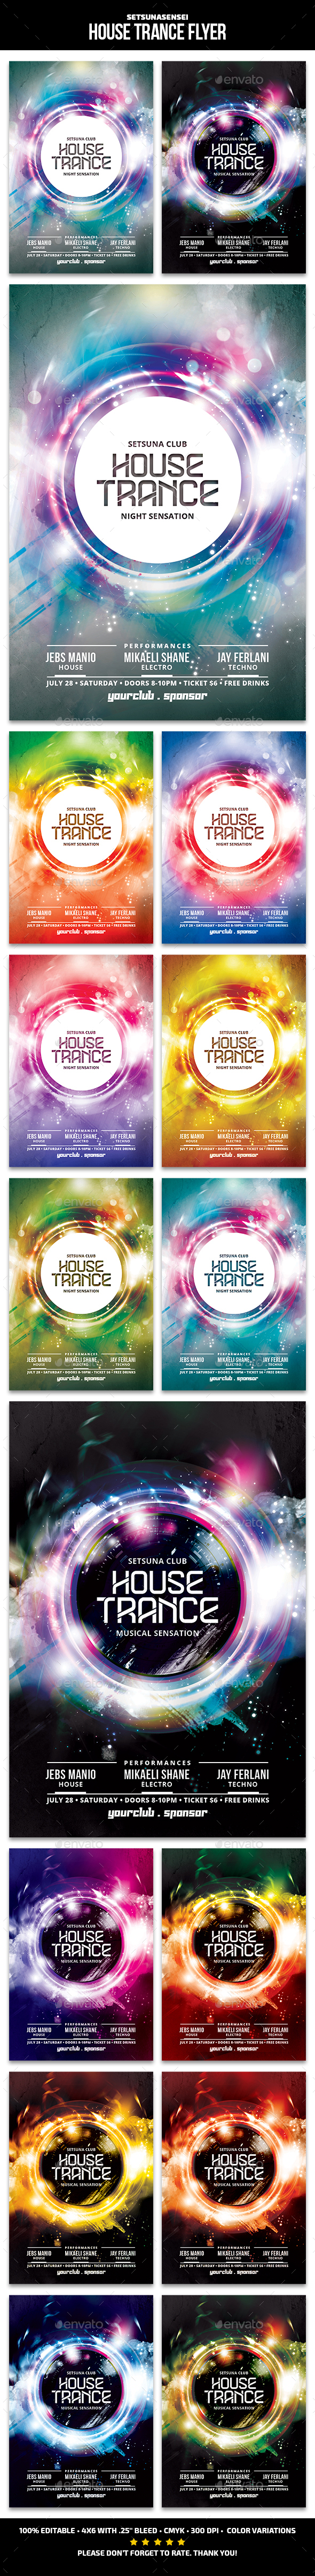 House Trance Flyer - Clubs & Parties Events